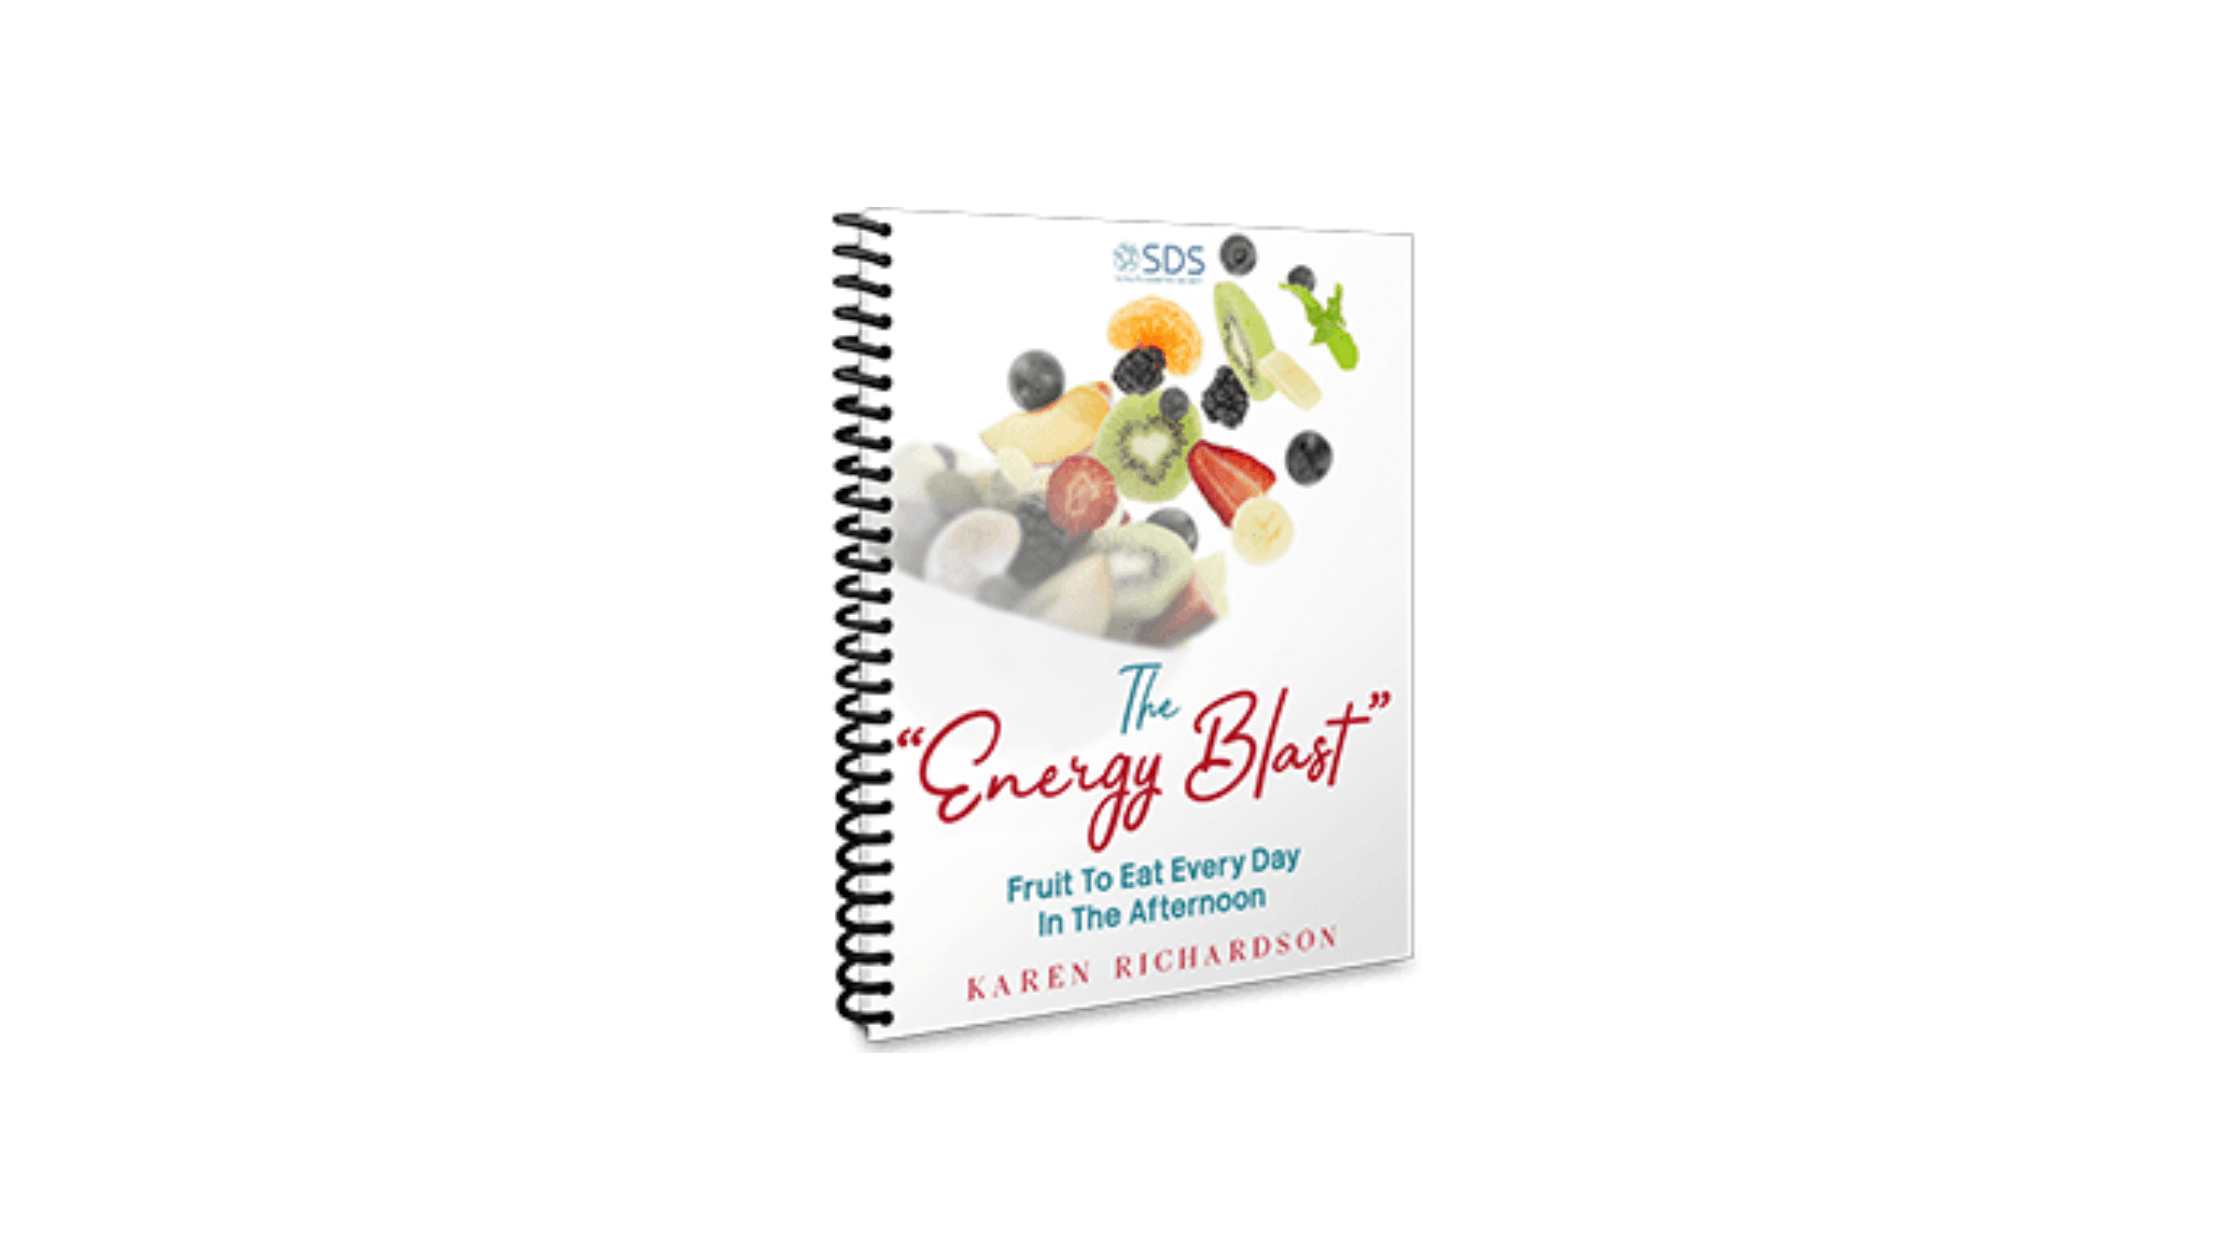 """The """"Energy Blast"""" Fruit To Eat Every Day In The Afternoon"""